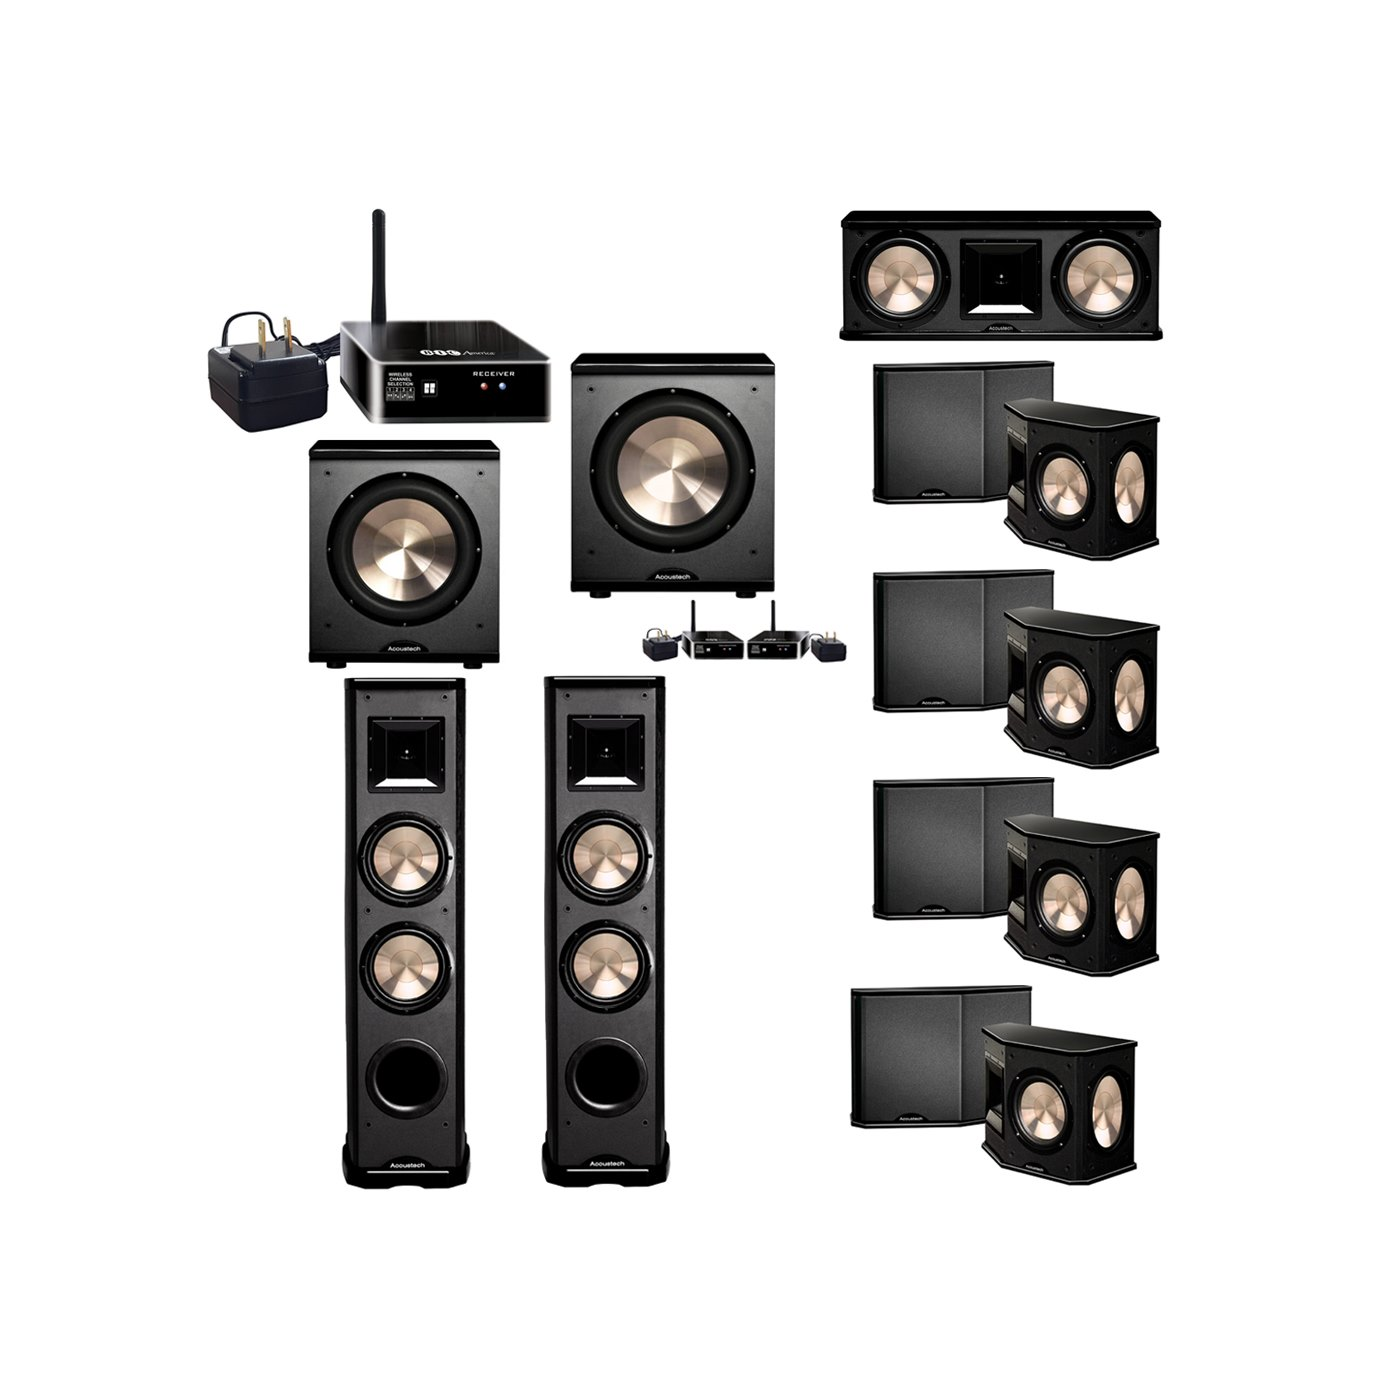 BIC Acoustech 7.2 System with 2 PL-89 II Floorstanding Speakers, 1 PL-28 II Center Speaker, 4 PL-66 Surround Speakers, 1 PL-200 Wireless Subwoofer, 1 PL-200 Subwoofer, 2 Wireless Receiver Add on